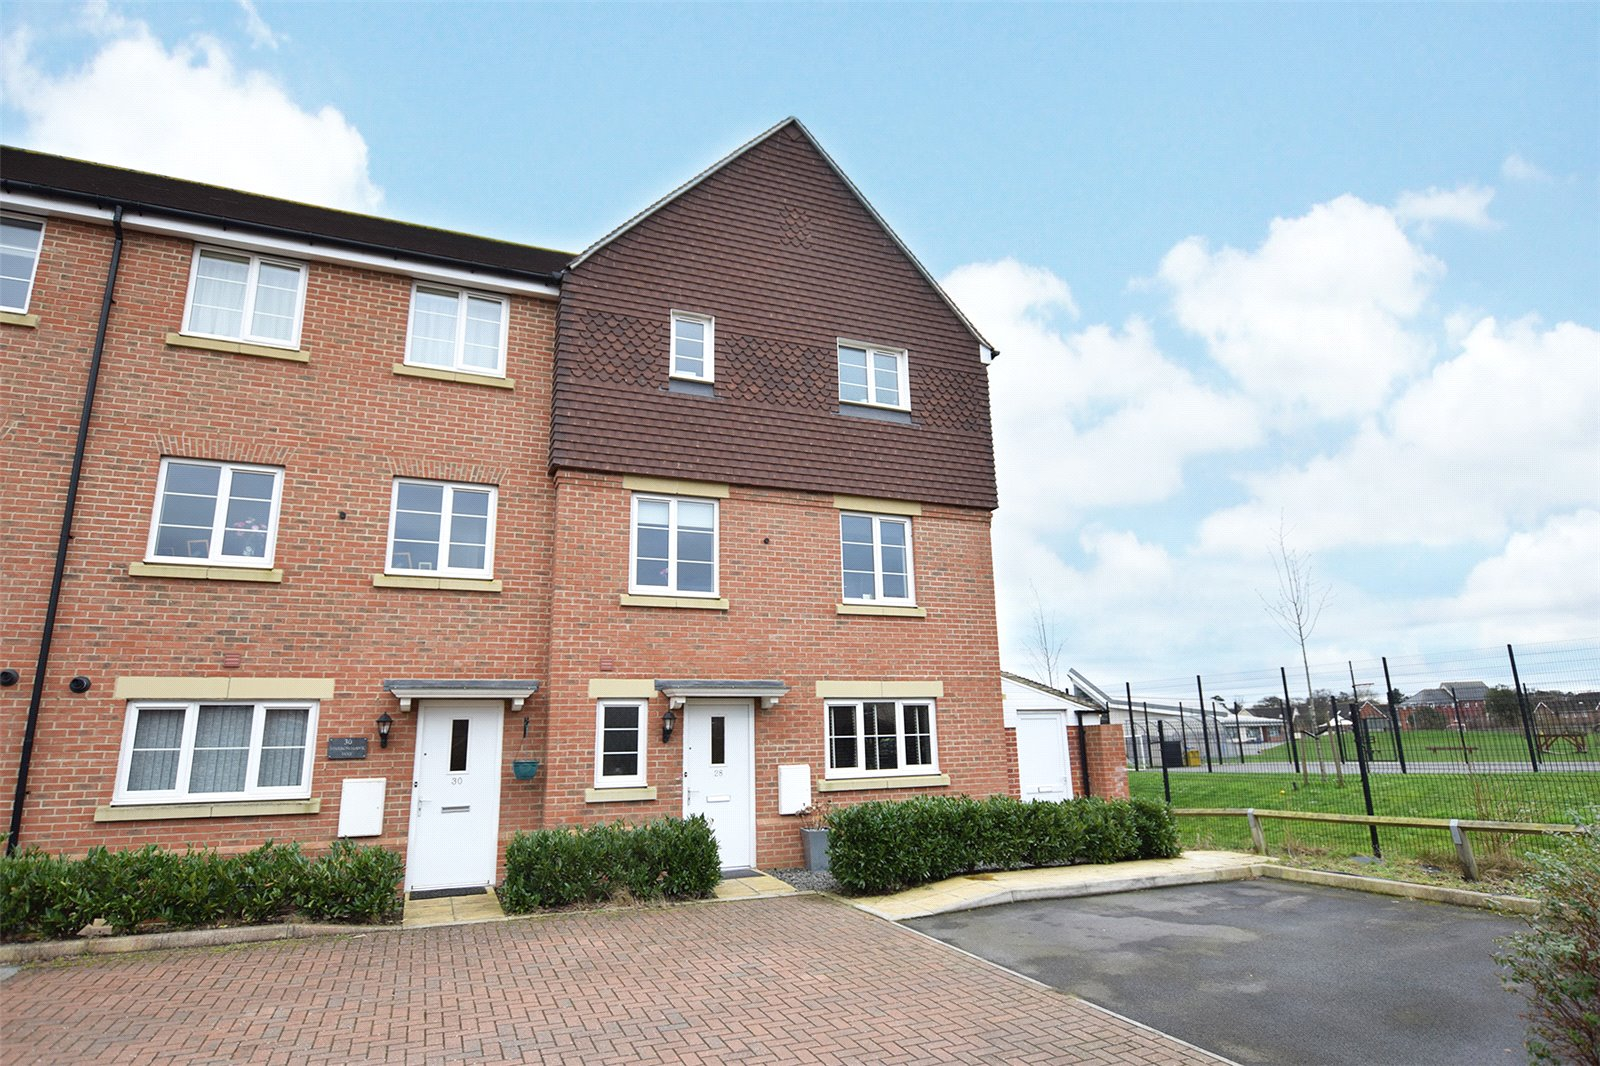 4 Bedrooms End Of Terrace House for sale in Sparrowhawk Way, Bracknell, Berkshire, RG12